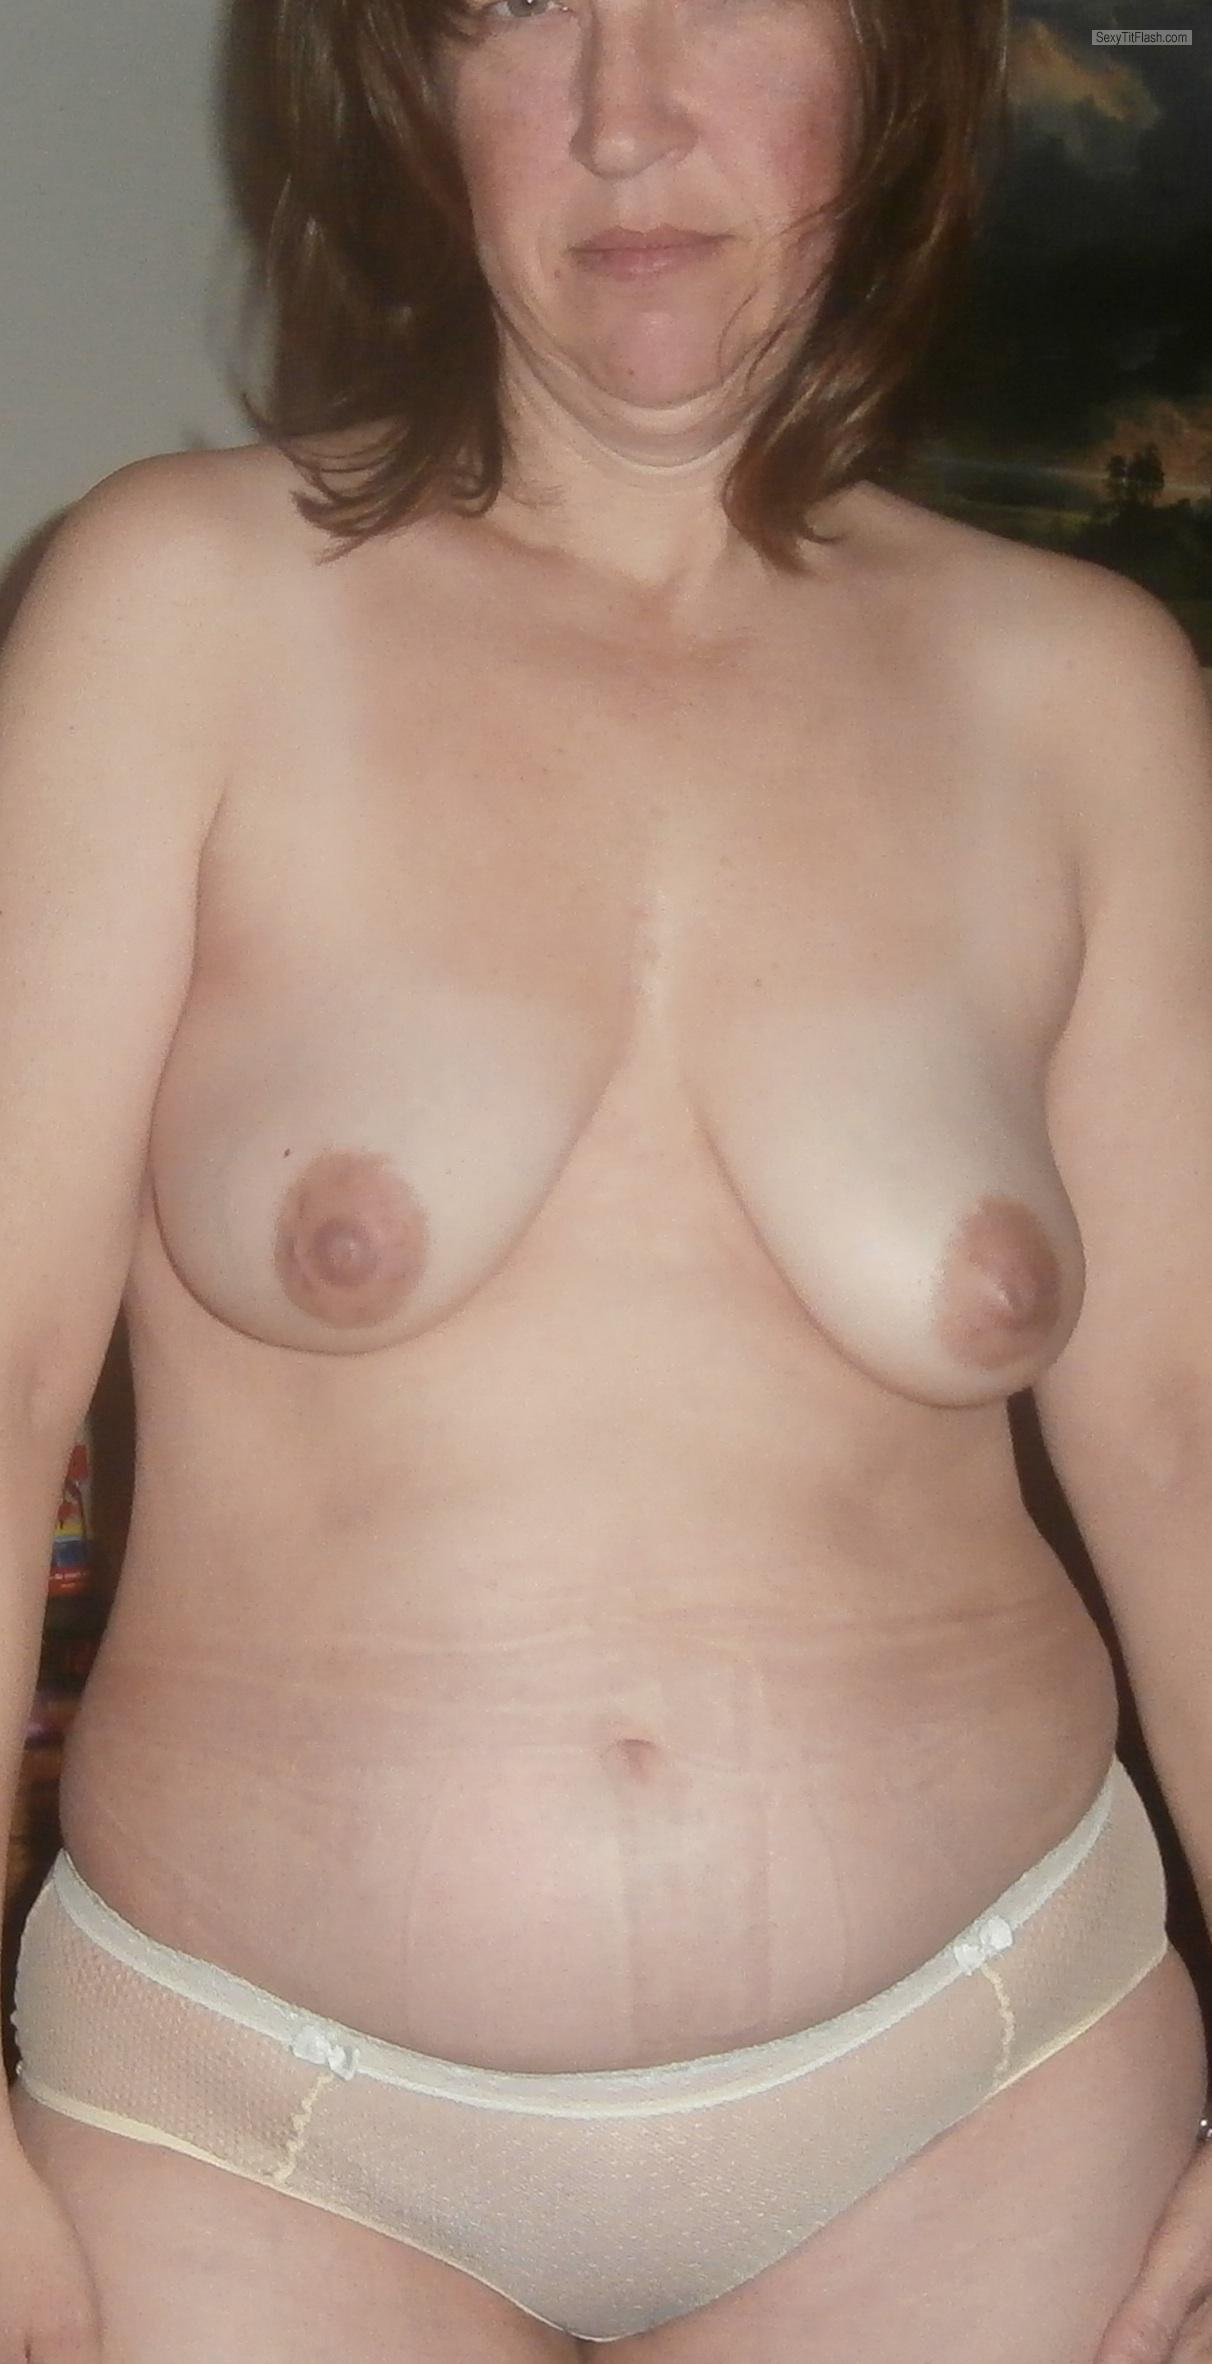 Small Tits Of My Wife FYI